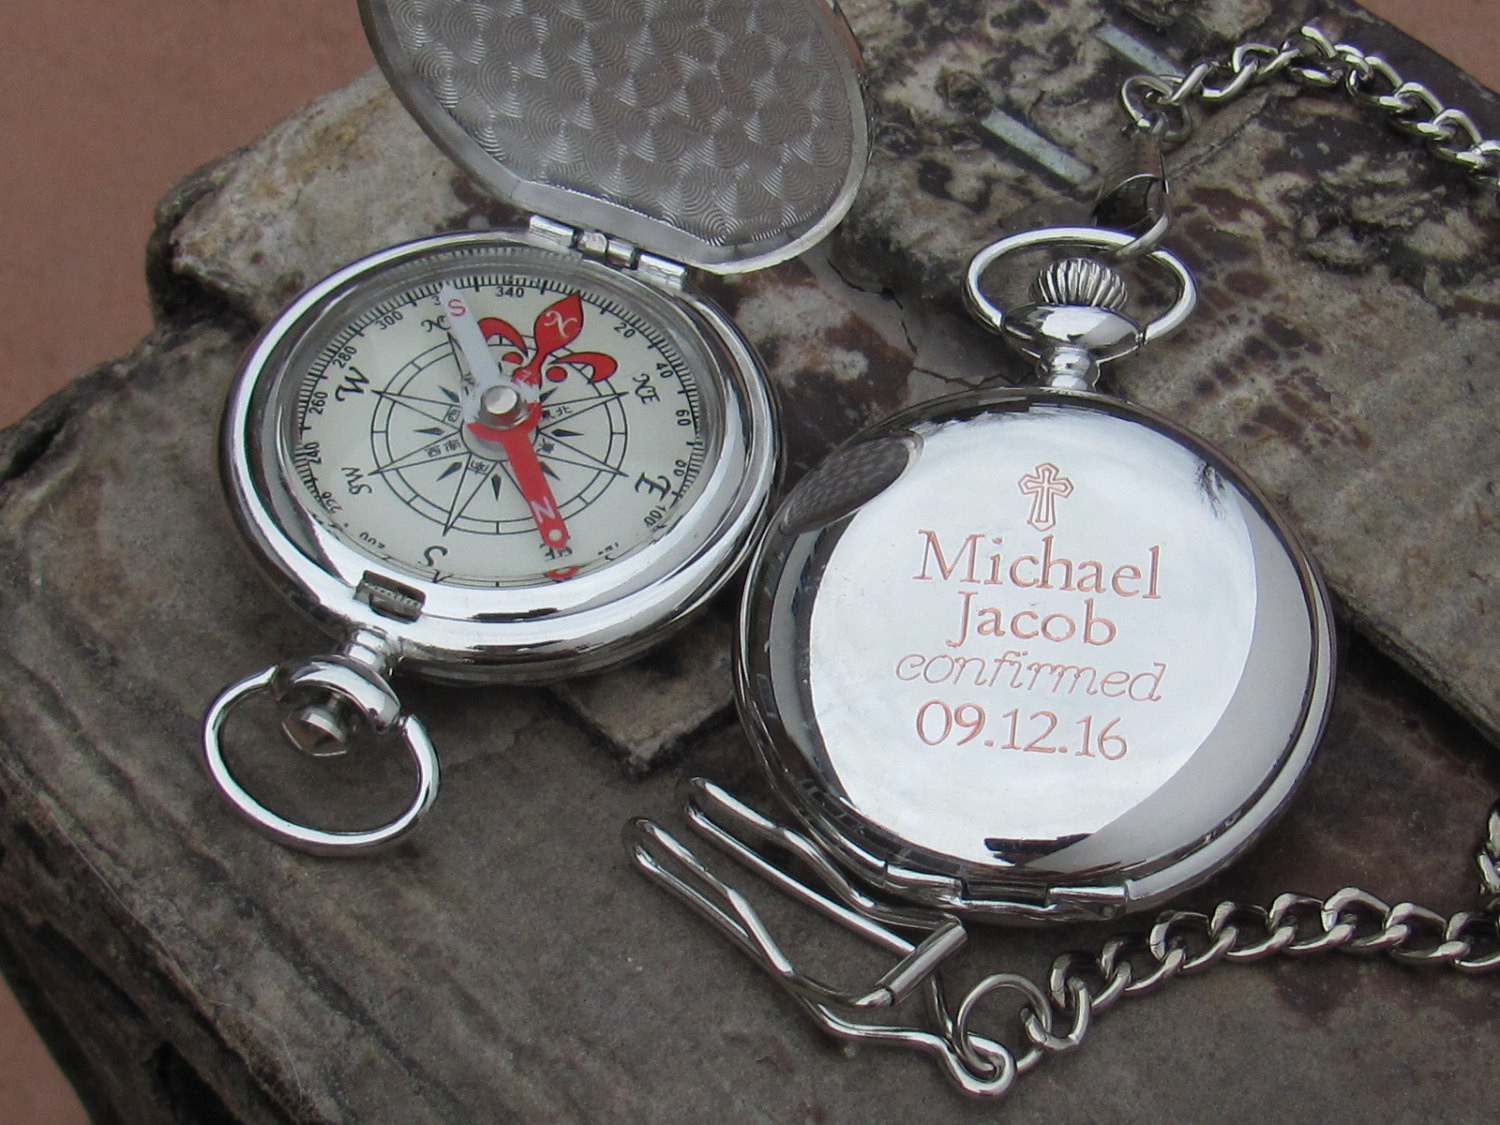 Best ideas about Confirmation Gift Ideas Boys . Save or Pin Confirmation Gift Engraved Personalized by EngravedGifts1 Now.